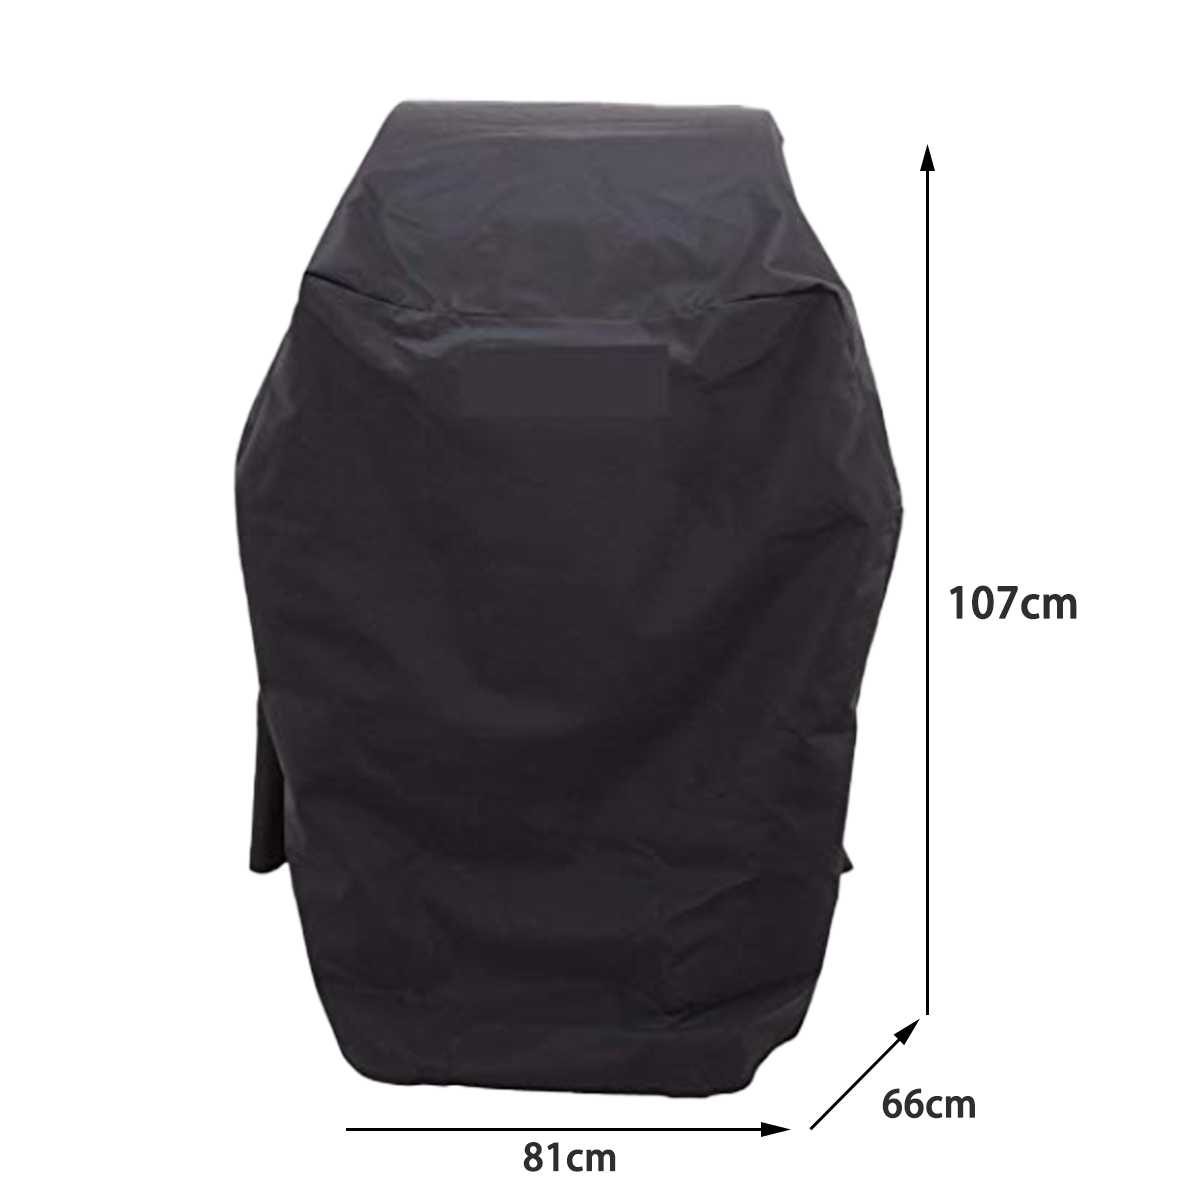 Premium Waterproof BBQ Grill Cover BBQ Gas Grill Cover For Char-Broil 2 Burner Heavy Duty